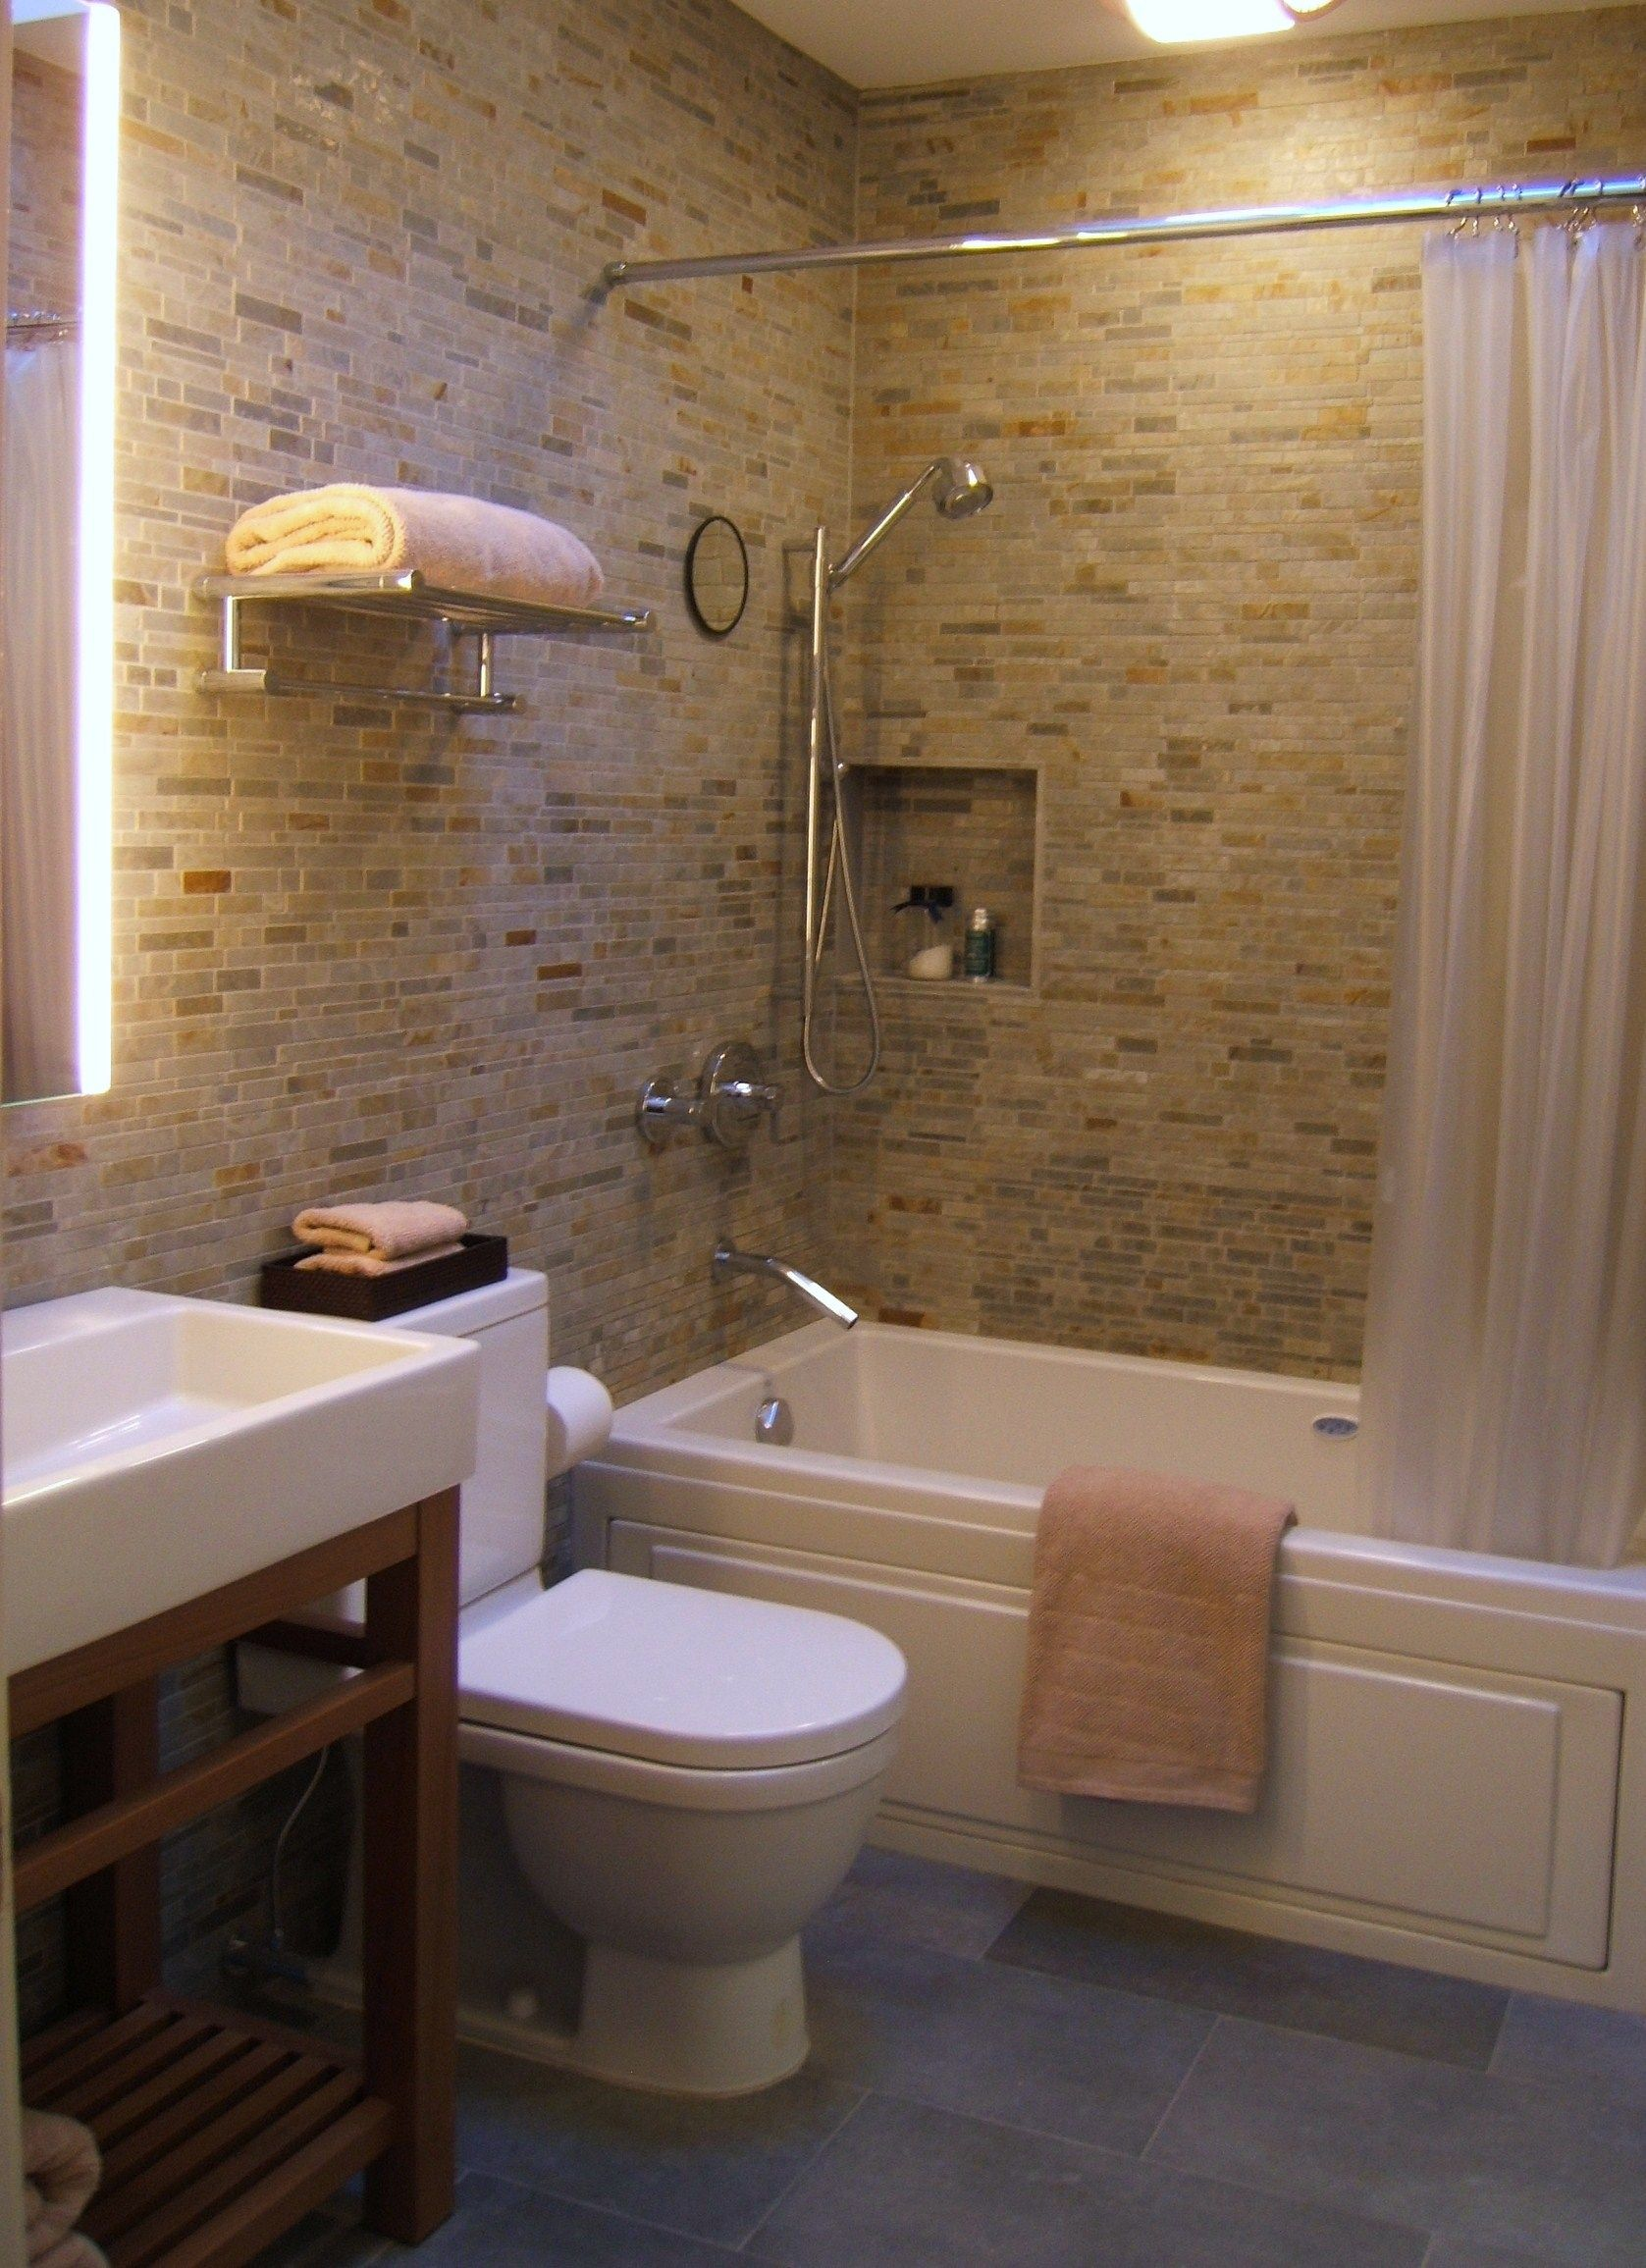 Small bathroom designs south africa small bath for Designing small bathroom ideas